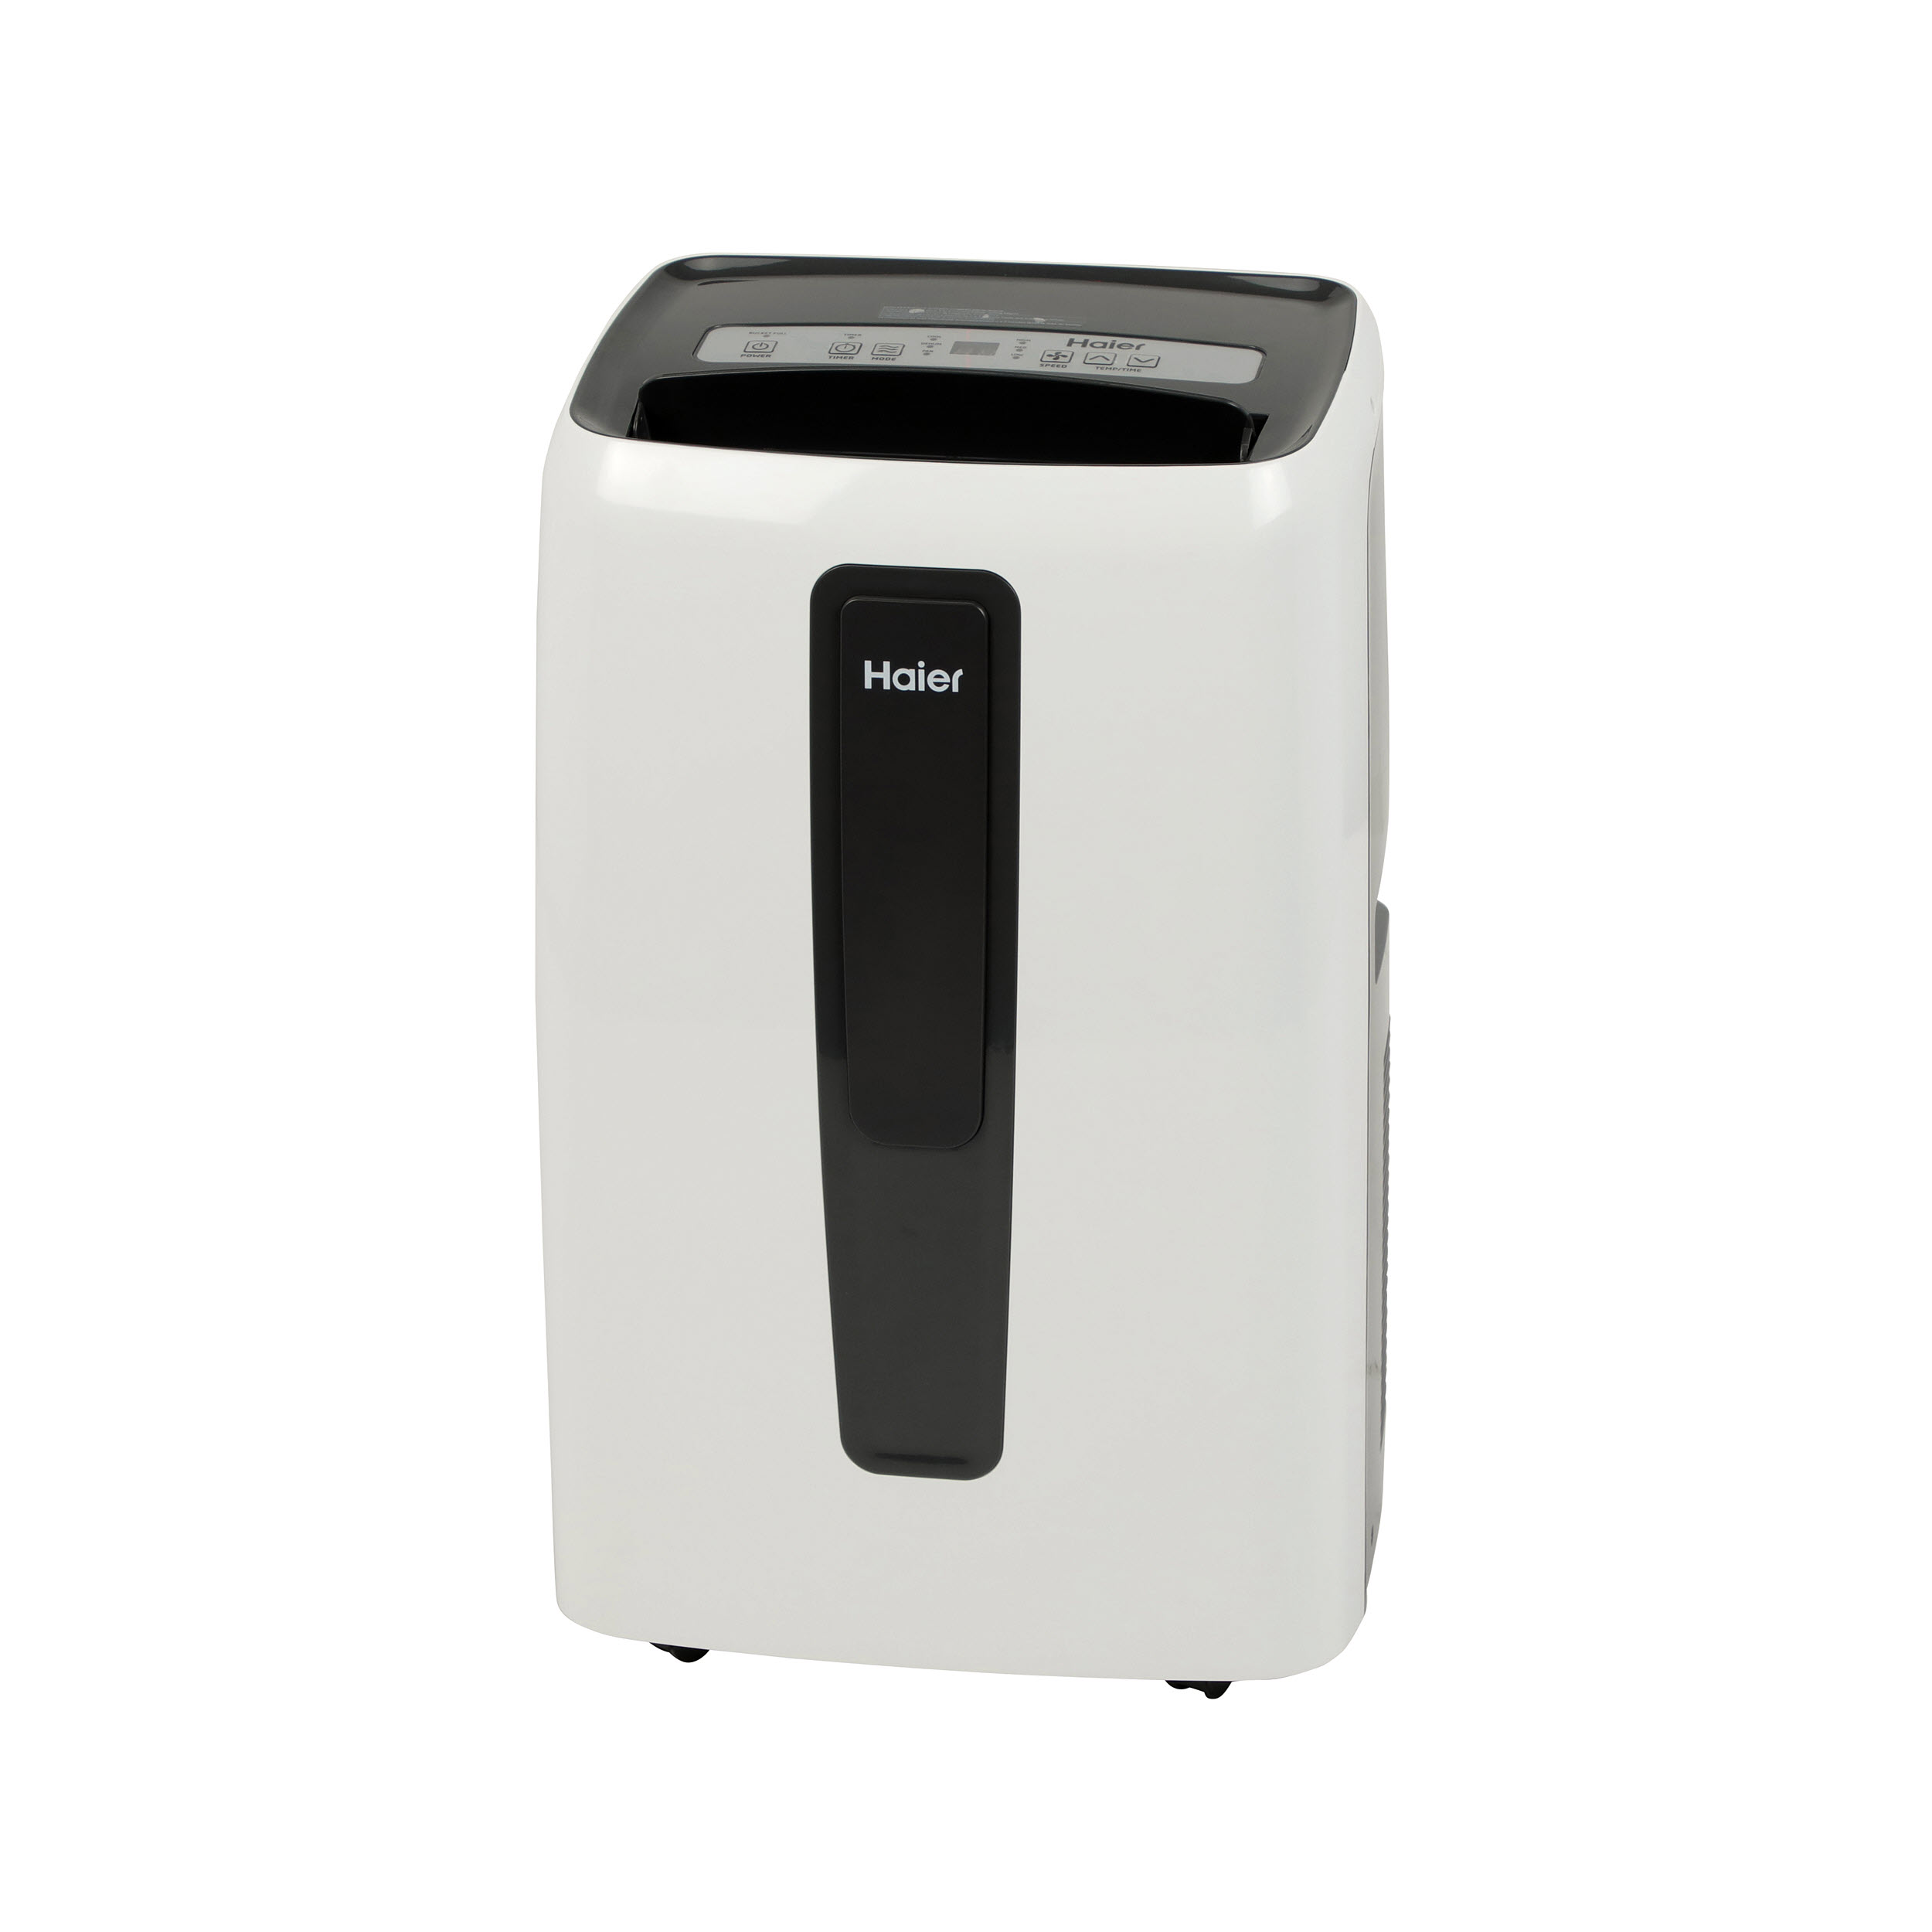 Haier - HPC12XCR - Portable Air Conditioner   Rogers